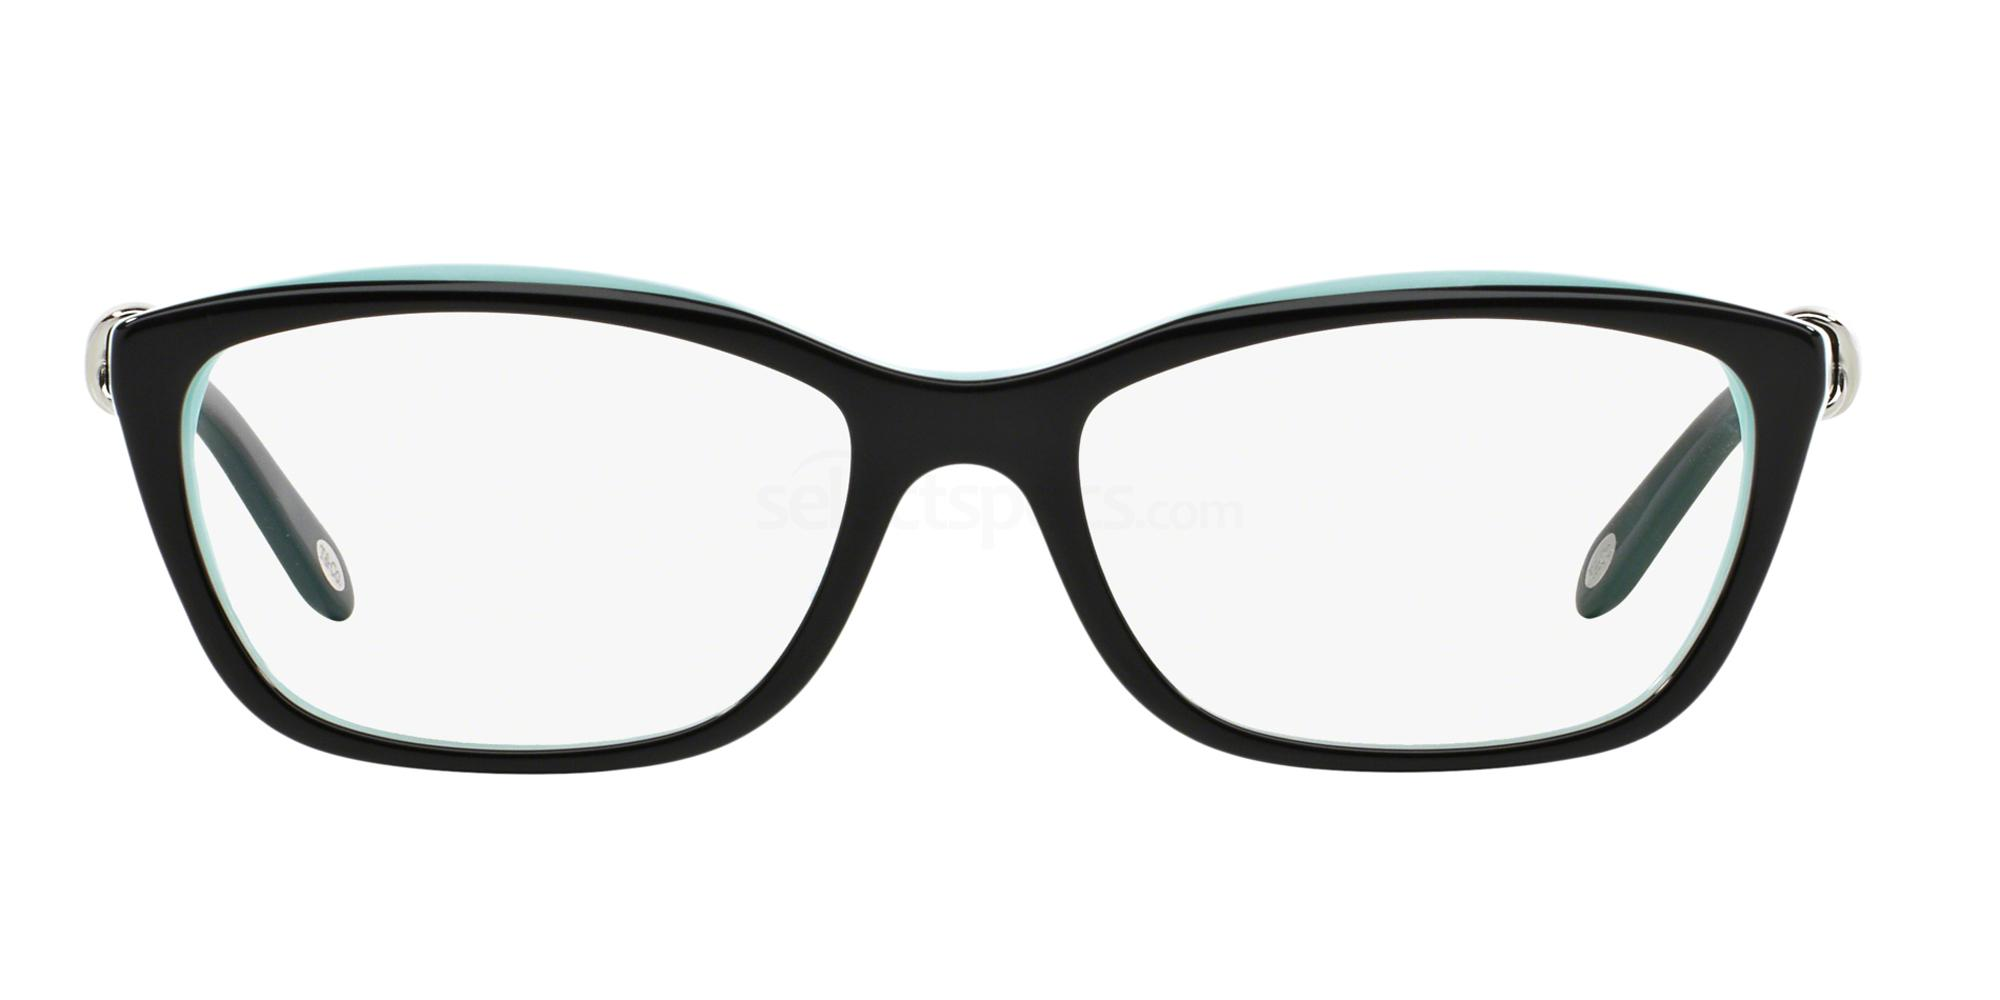 Tiffany & Co. TF2074 glasses | Free lenses | SelectSpecs